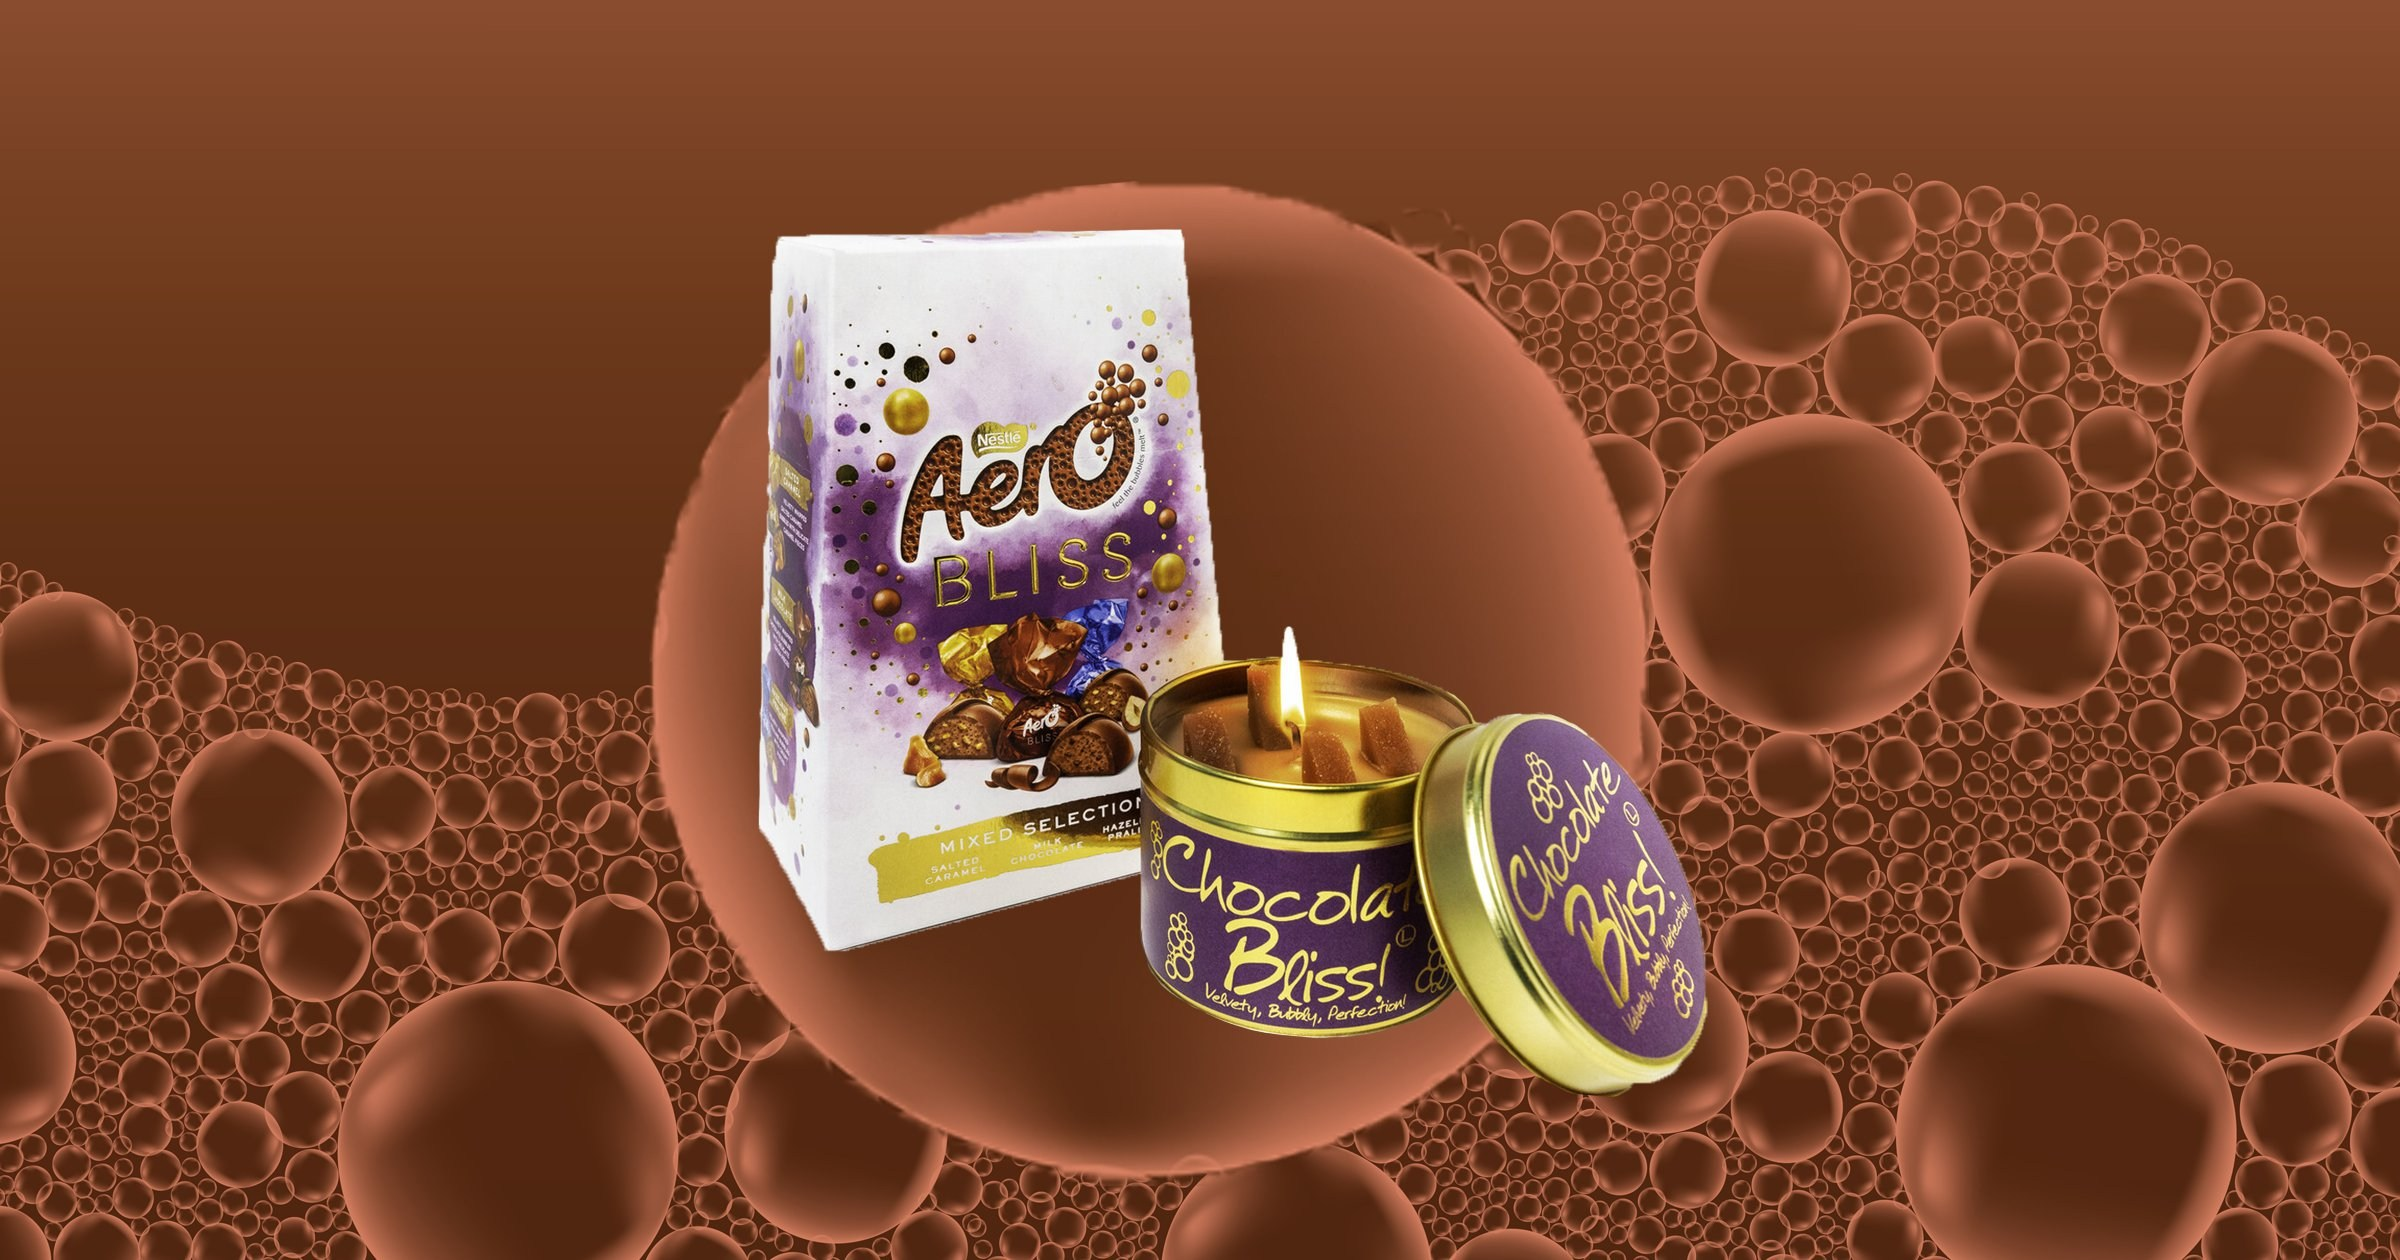 You can buy a scented candle that smells of Aero chocolate | Metro News